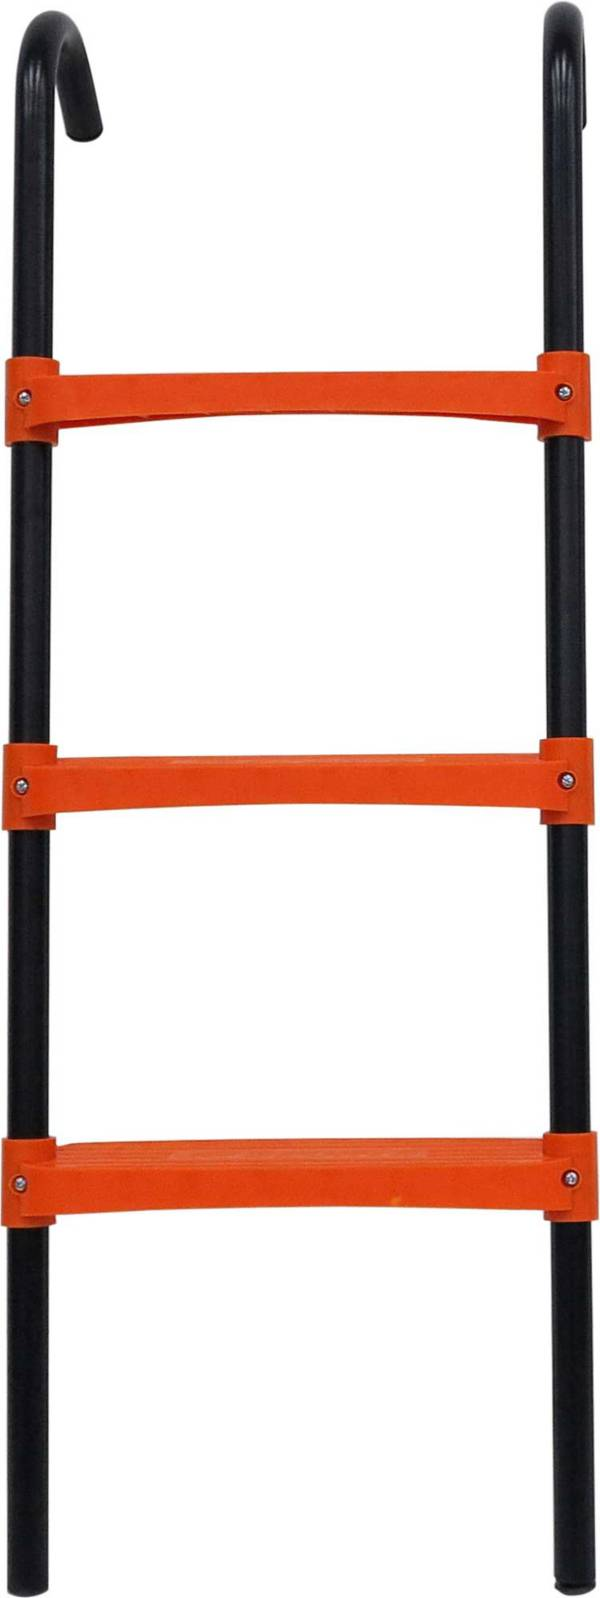 Jump Power Trampoline Step-Up Ladder product image